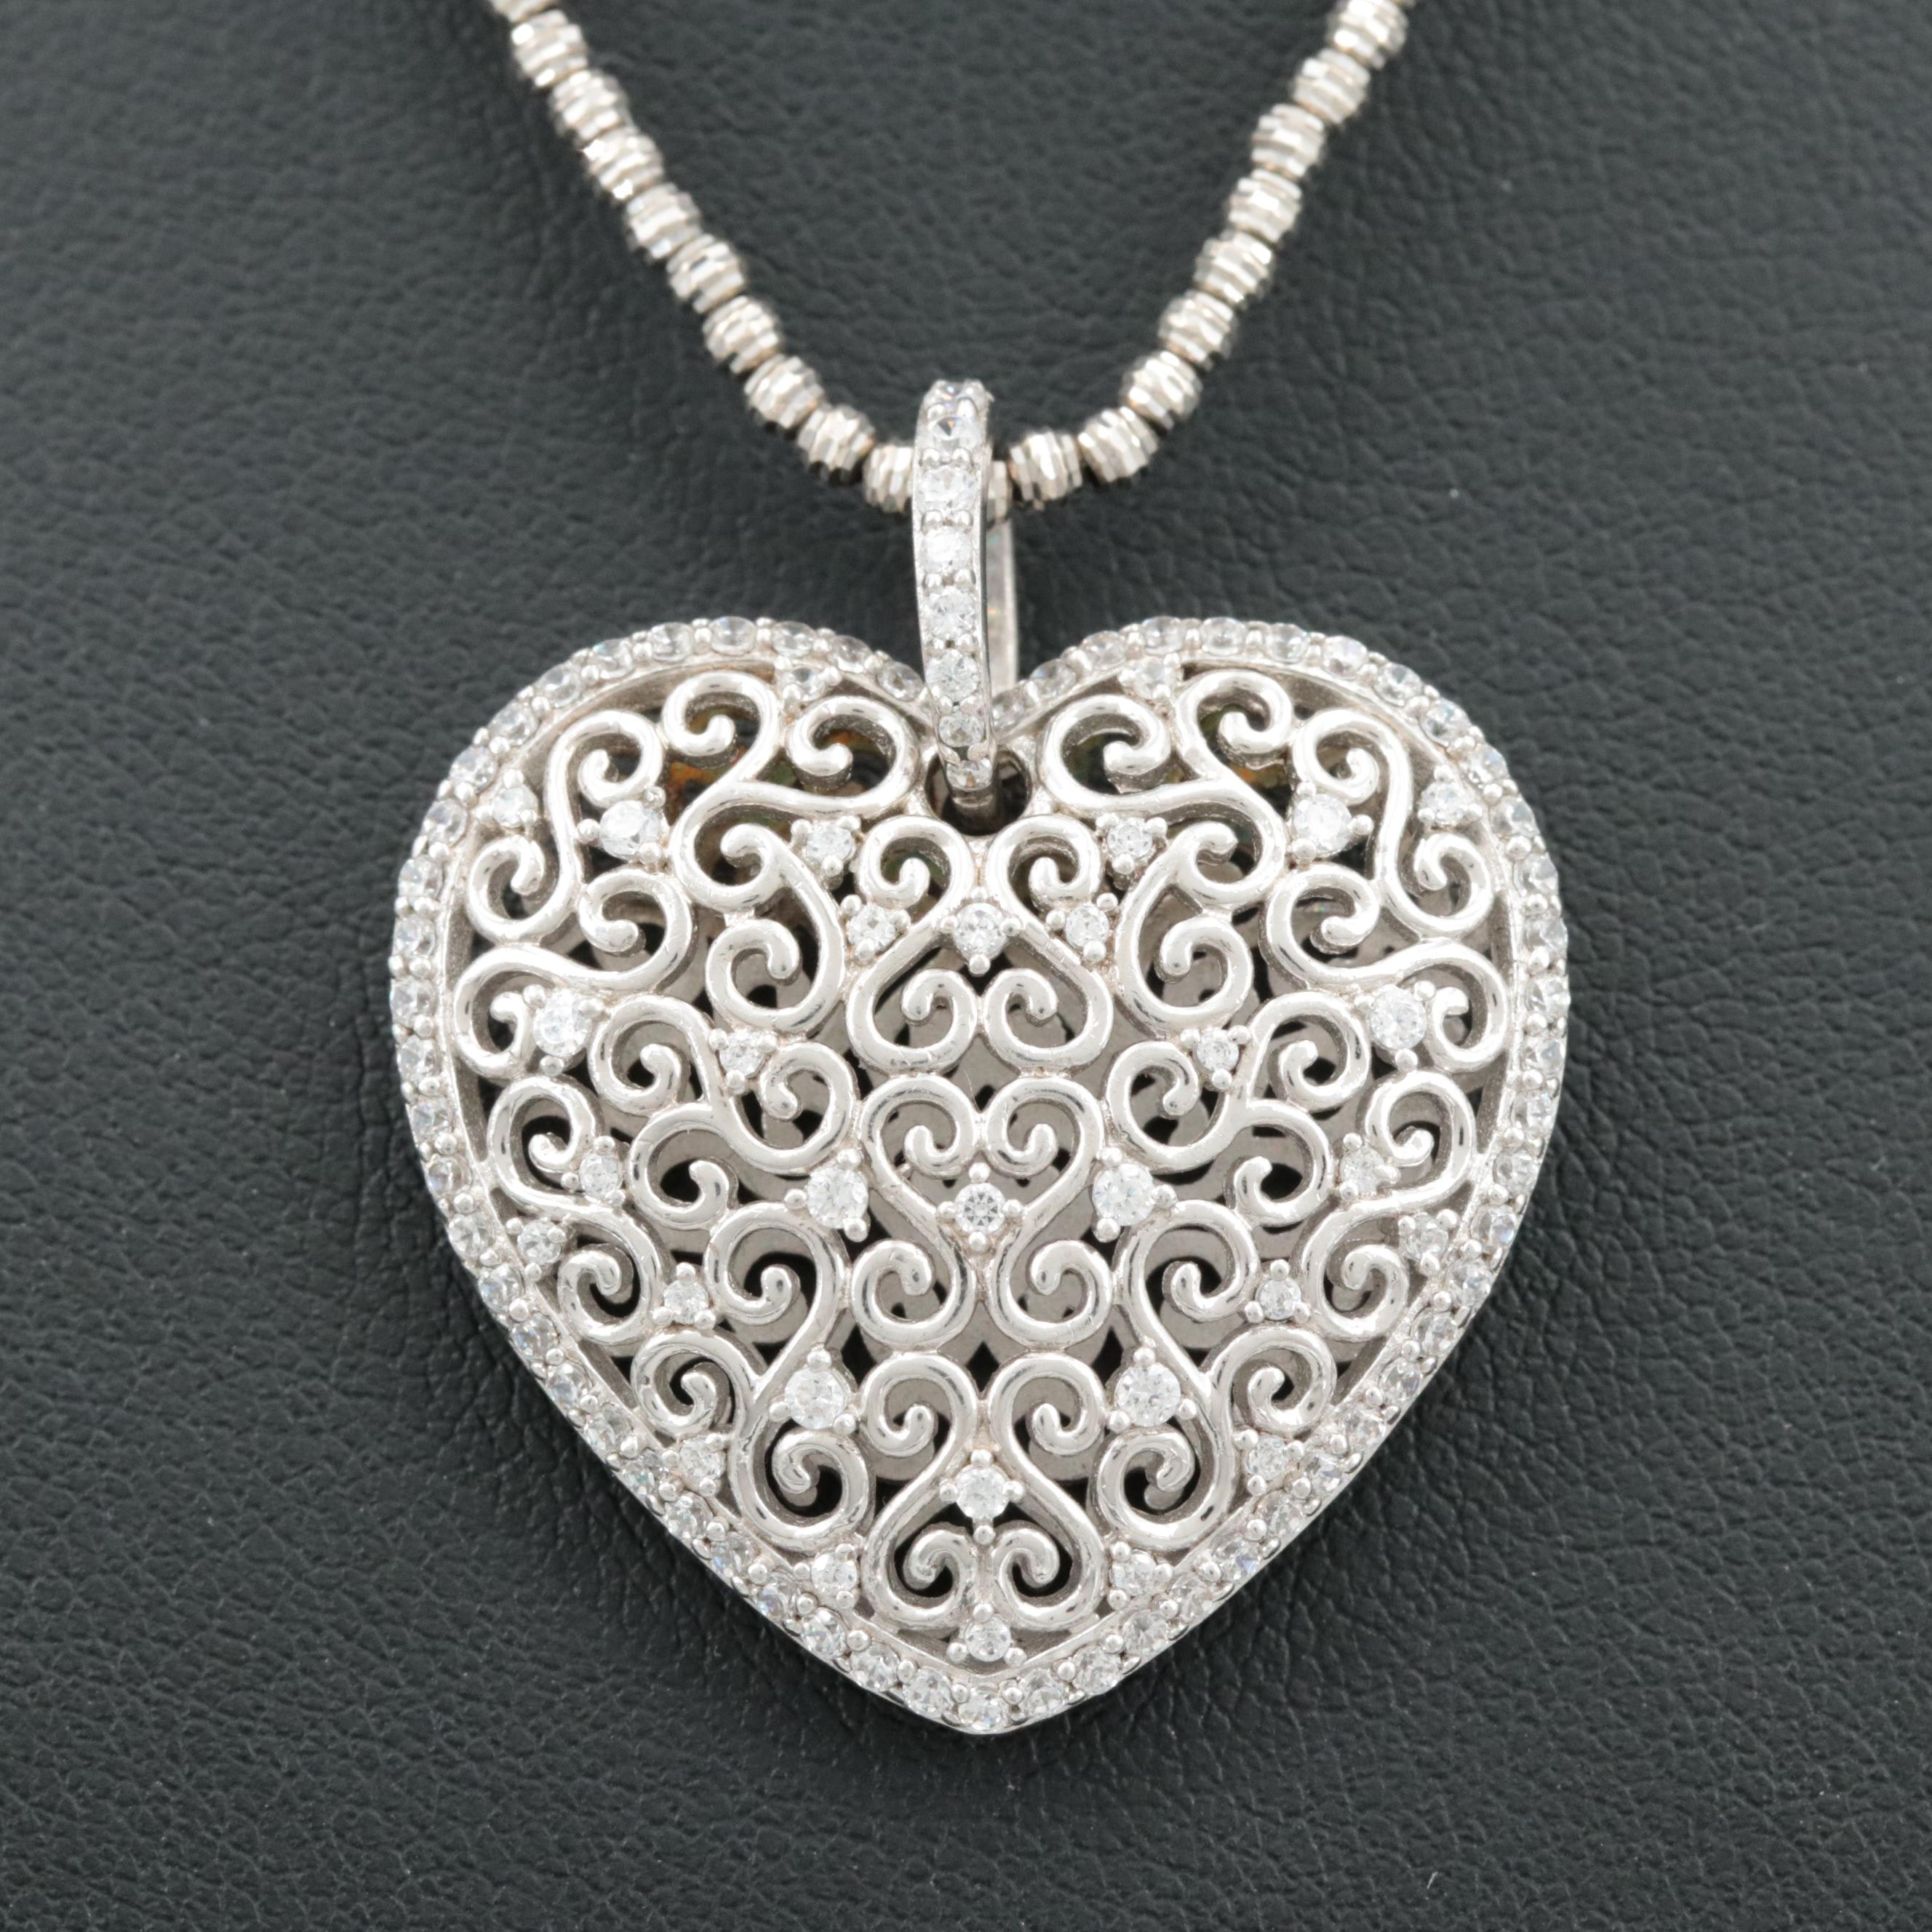 14K White Gold Chain and Sterling Silver Cubic Zirconia Pendant